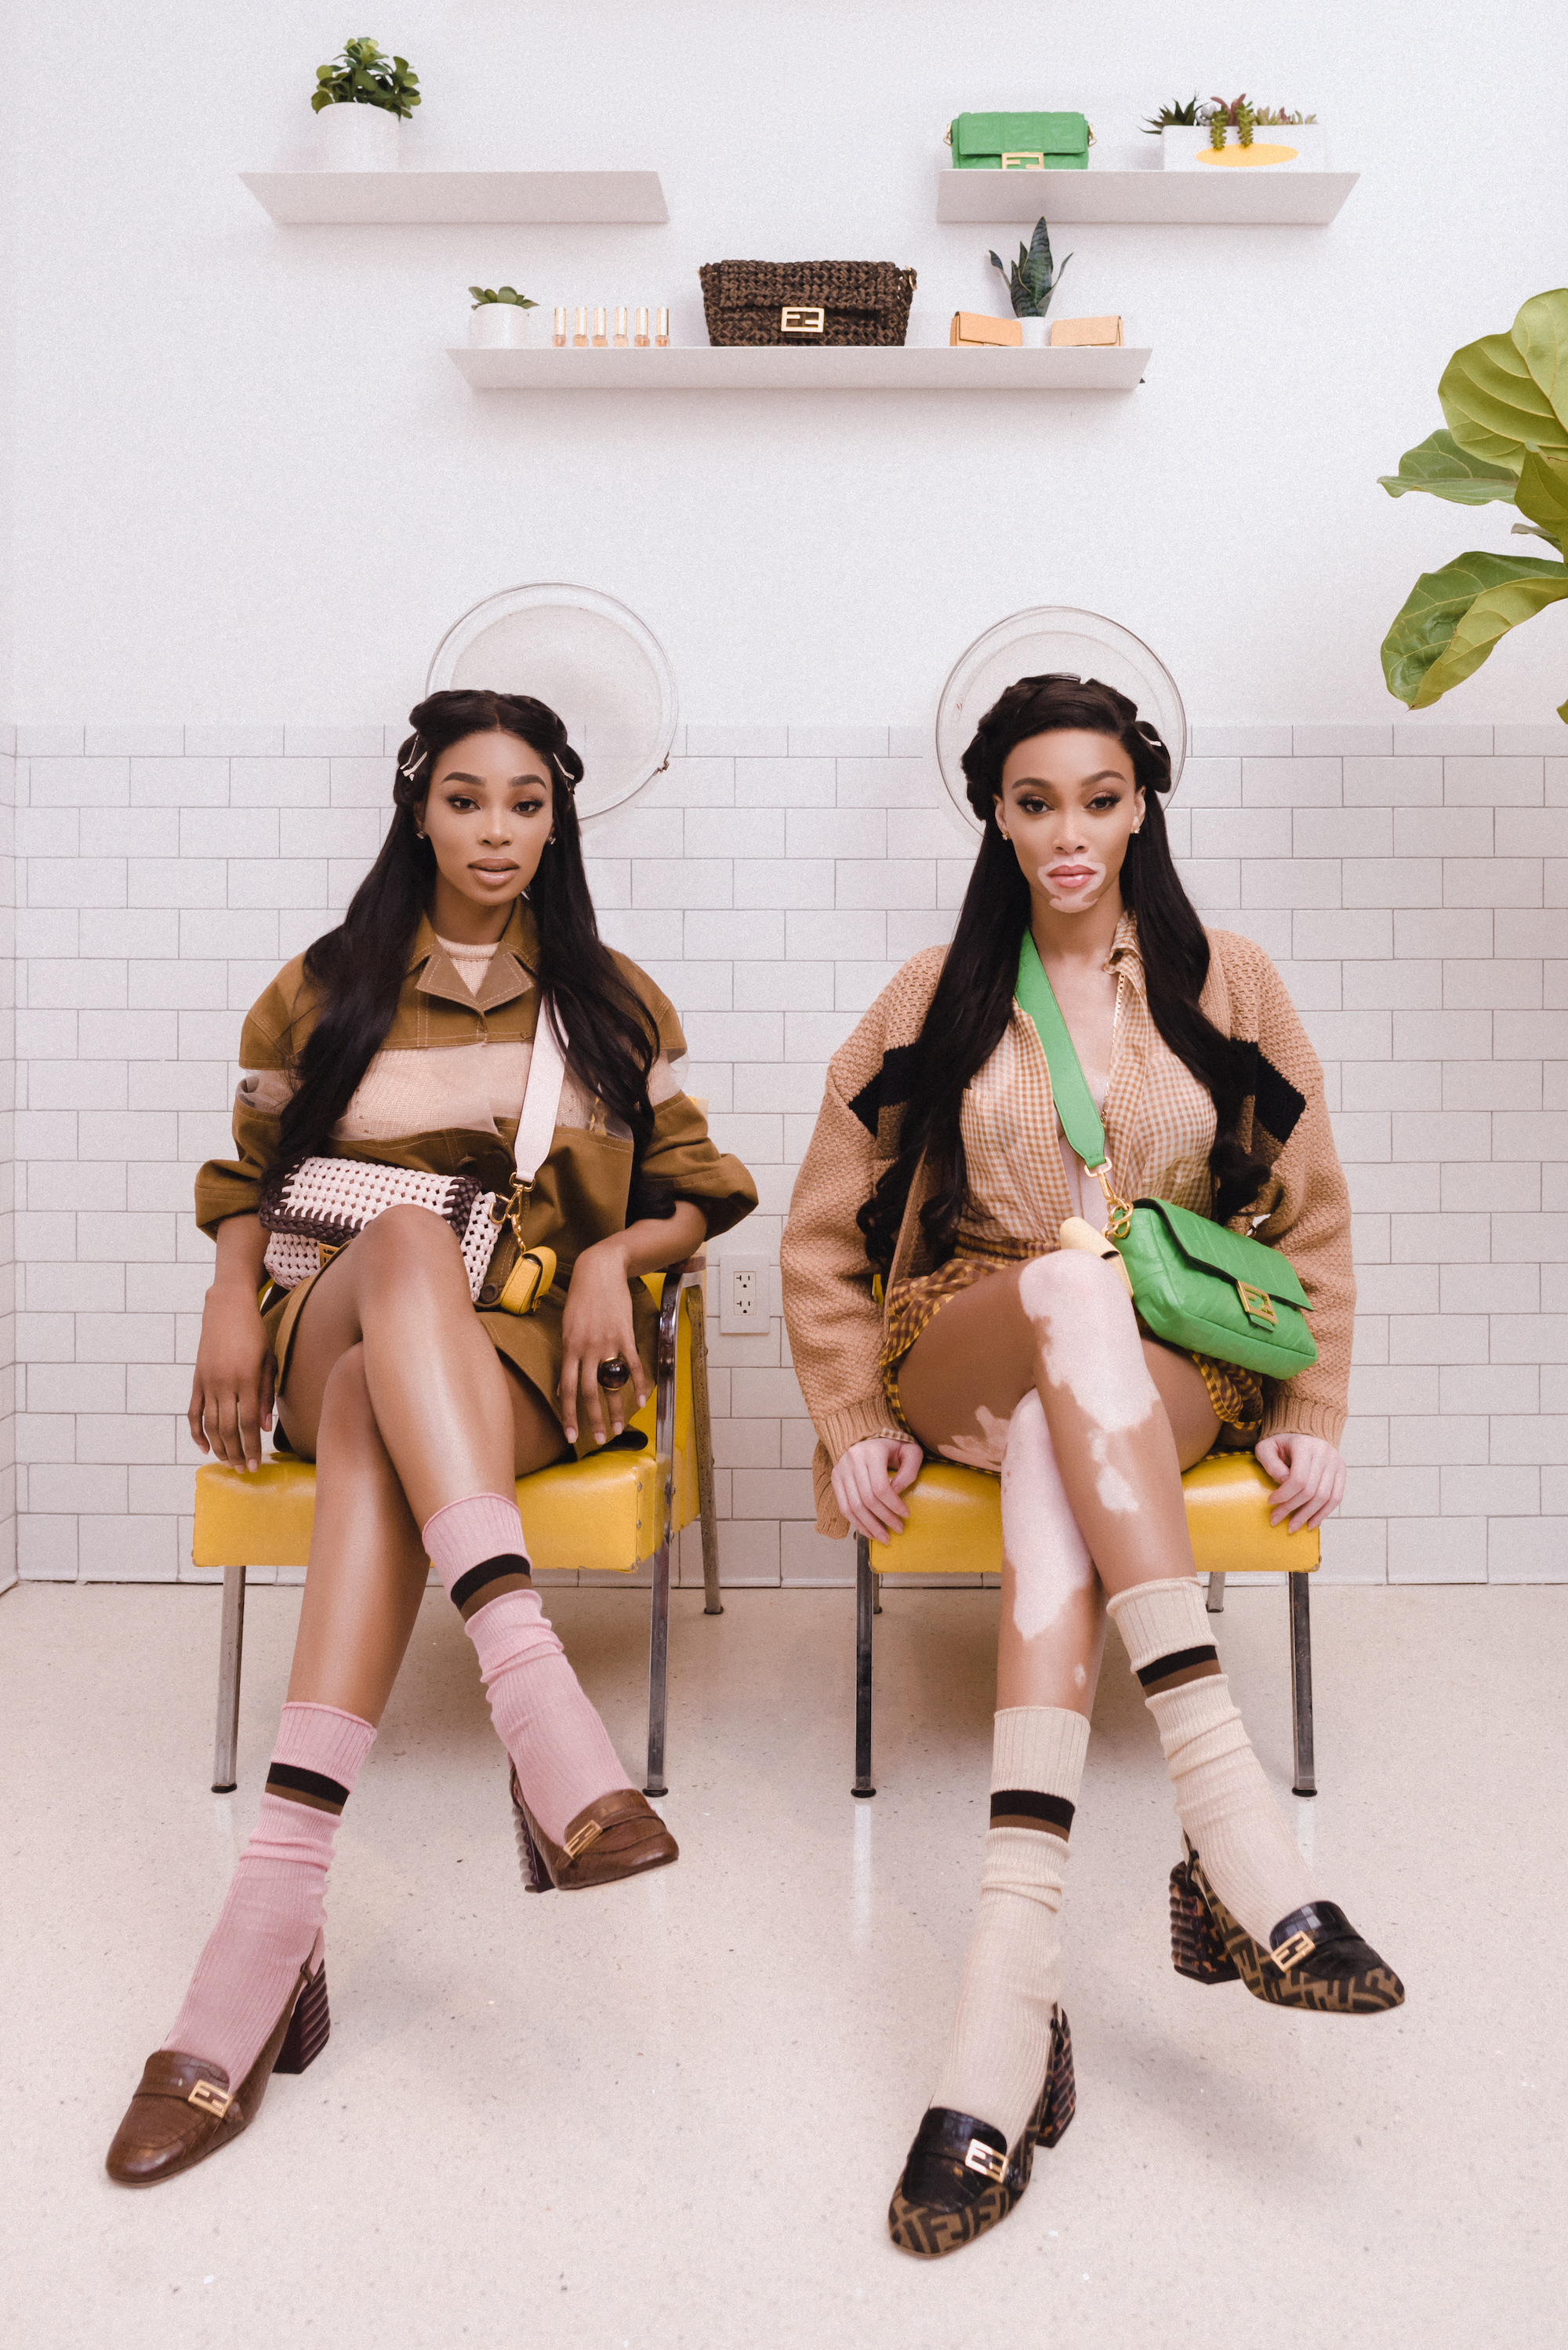 Winnie Harlow for Fend campaign #BaguetteFriendsForever